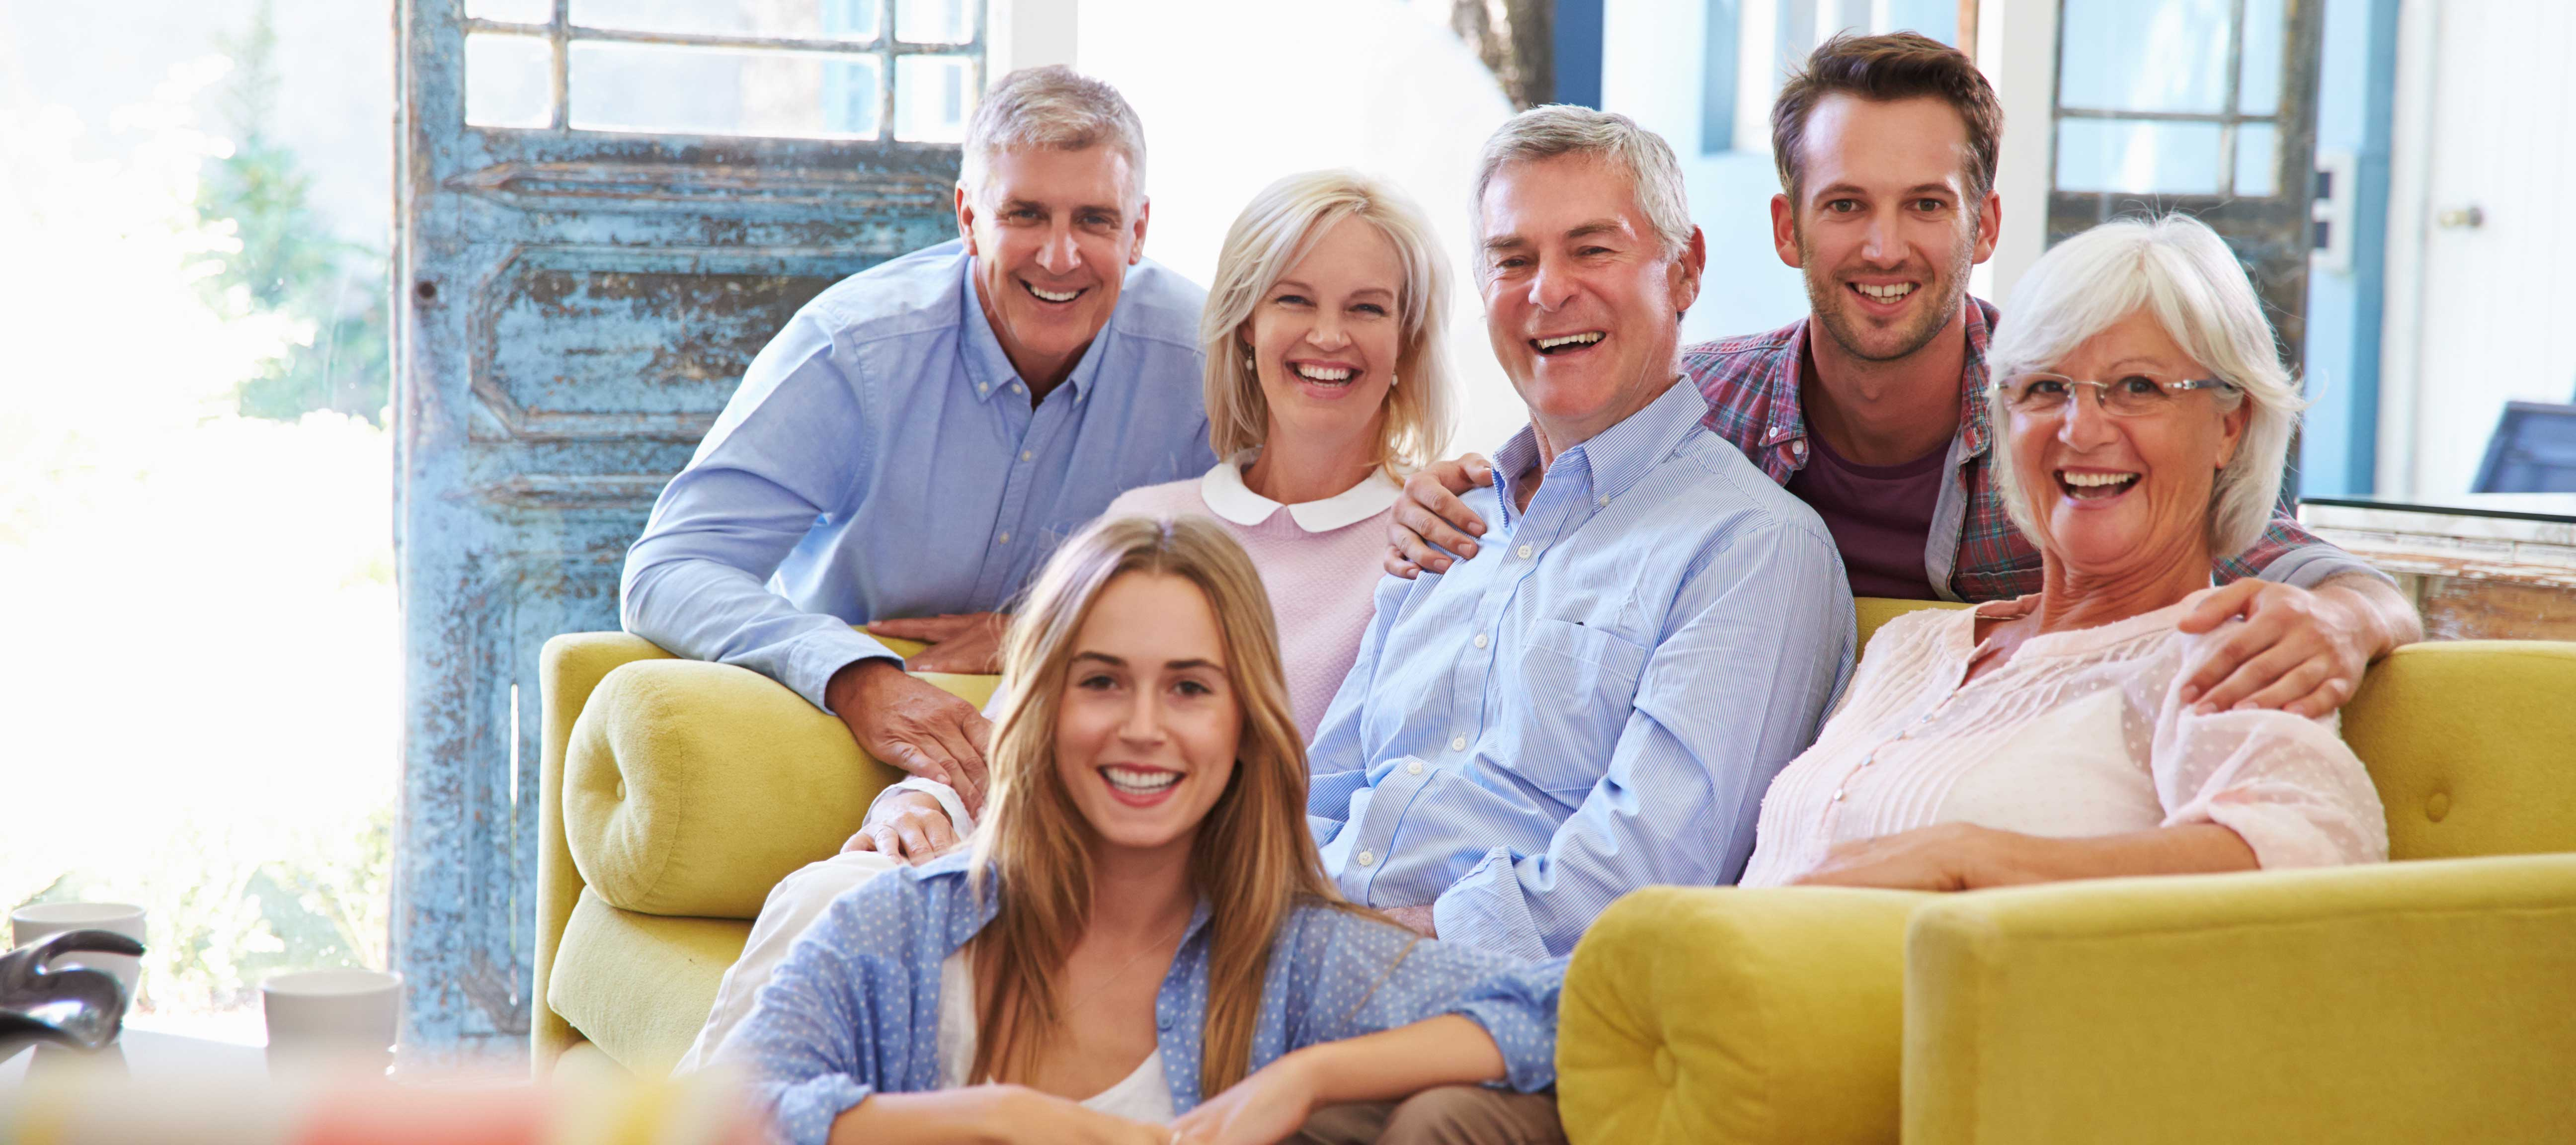 The-Ringer-featured-image-multigenerational-adults-of-all-ages